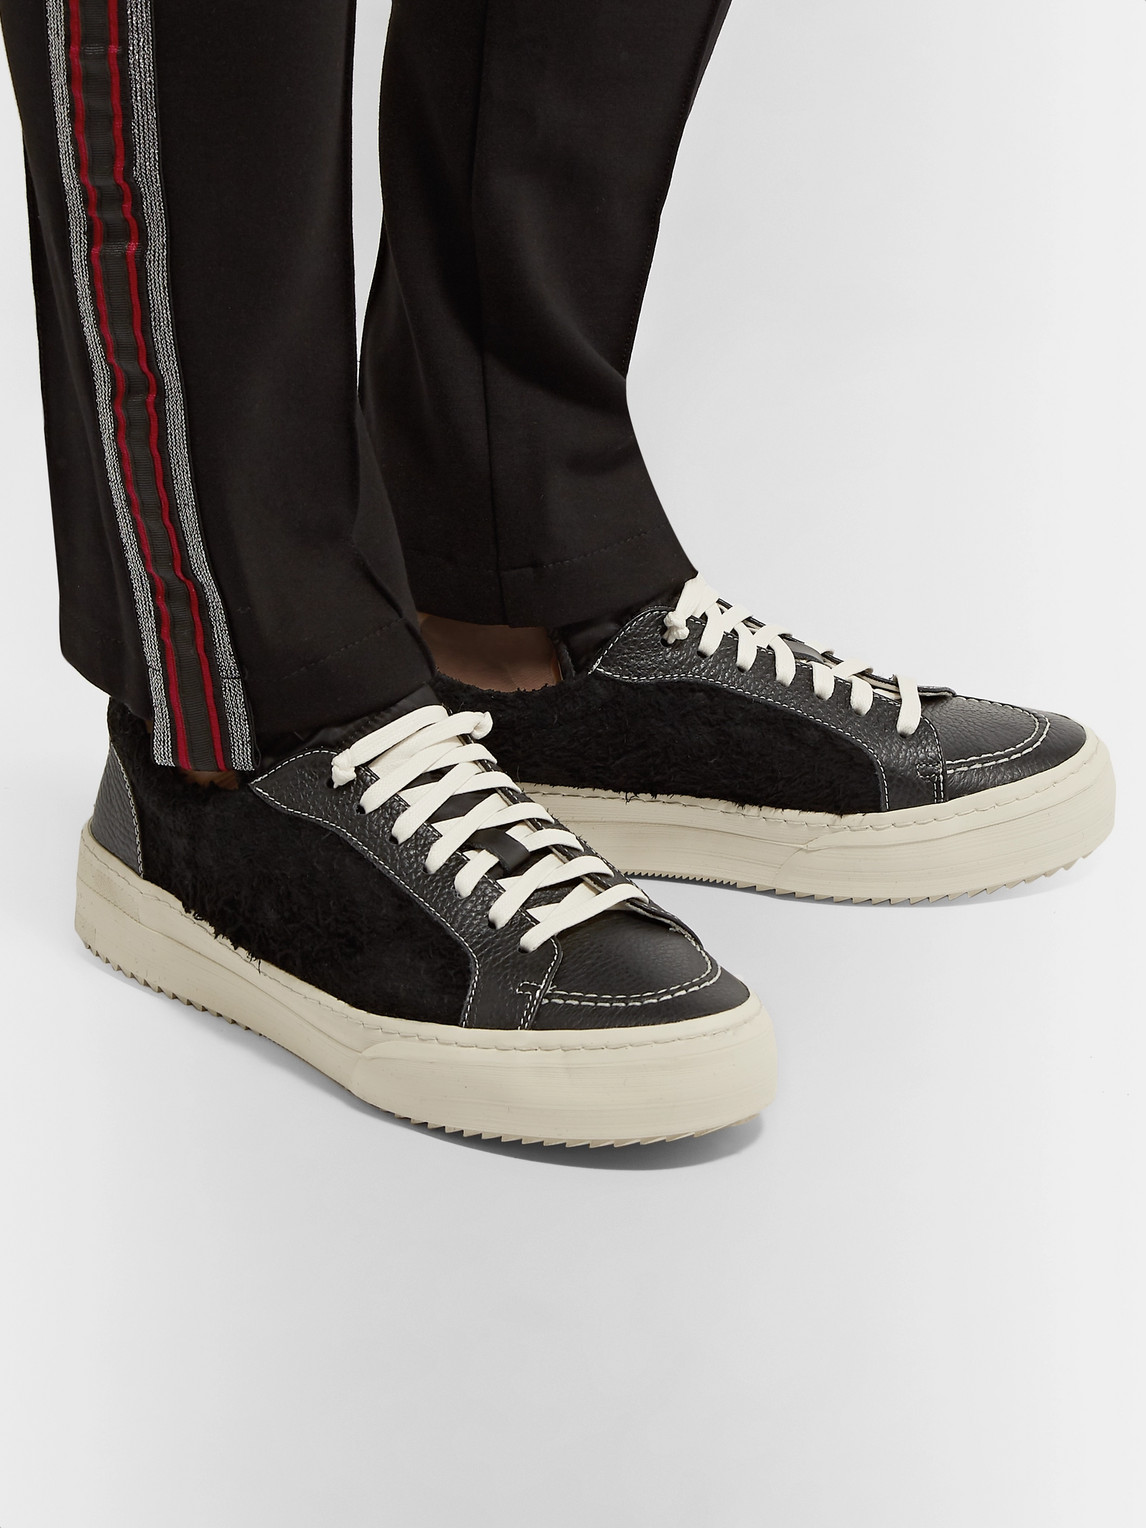 Rhude Sneakers RH V1 FULL-GRAIN LEATHER AND SUEDE SNEAKERS